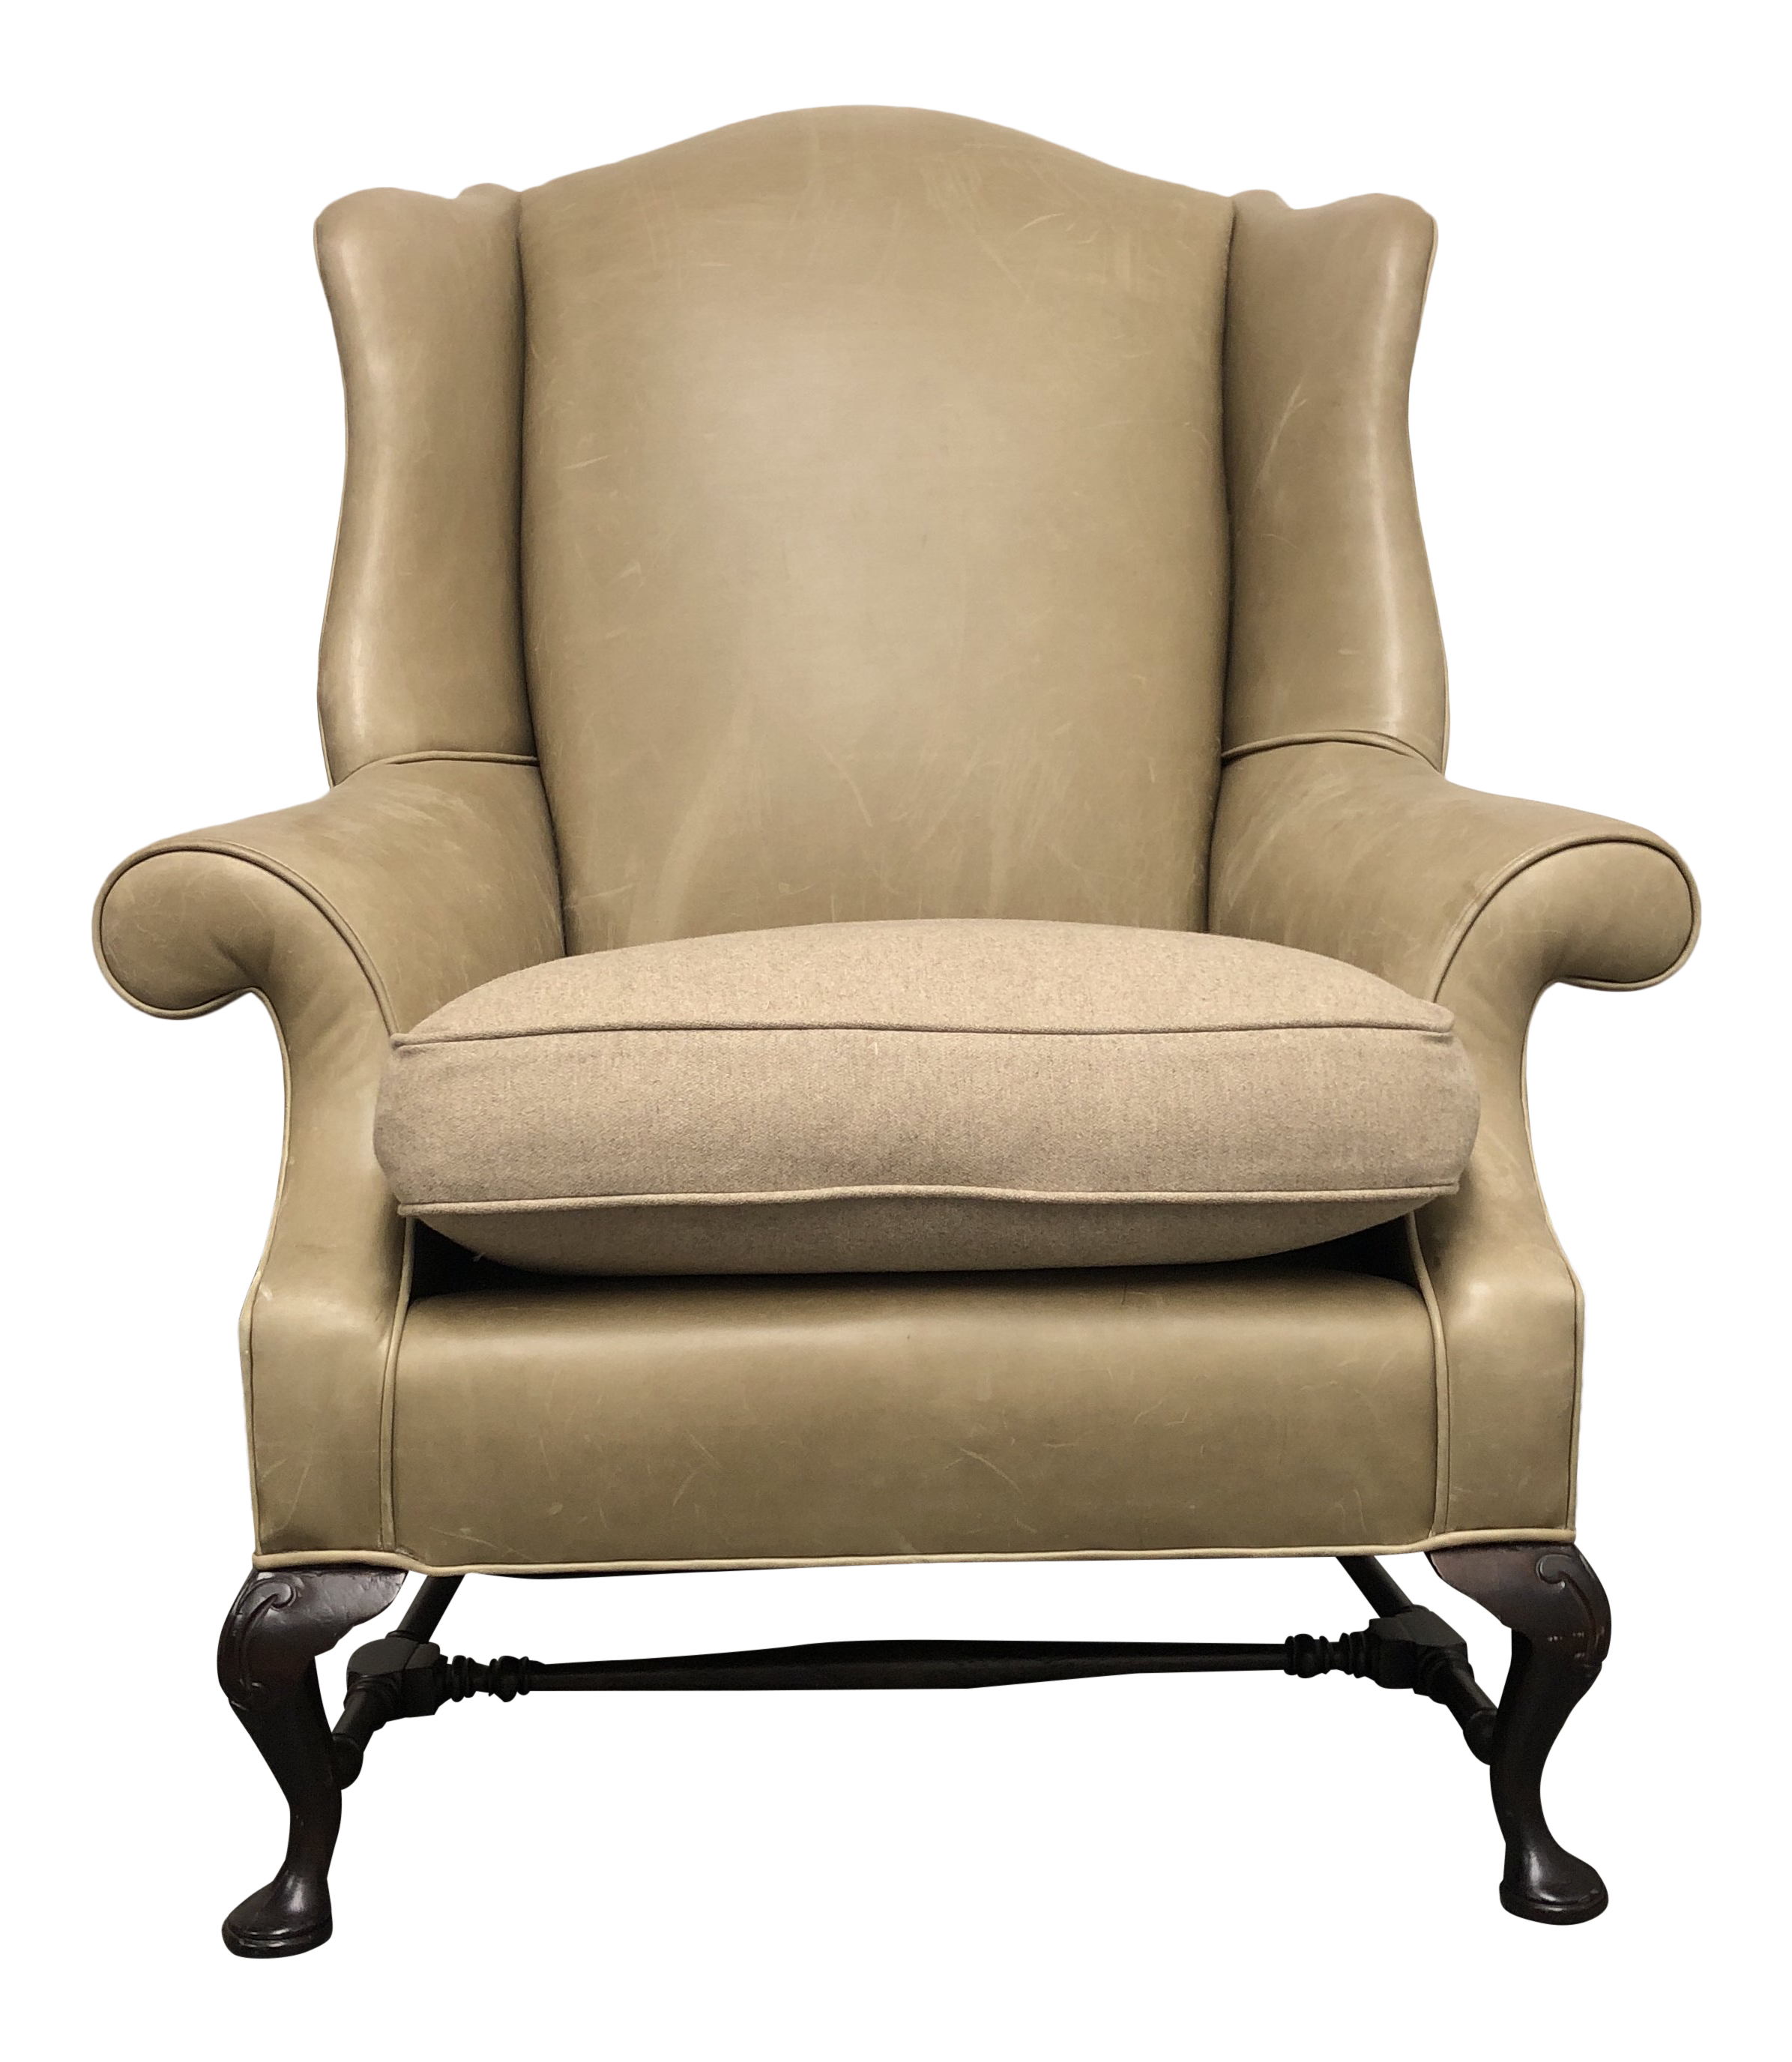 Sutter Furniture Leather Wingback Chair U0026 Fabric Cushion By Holly Hunt For  Sale